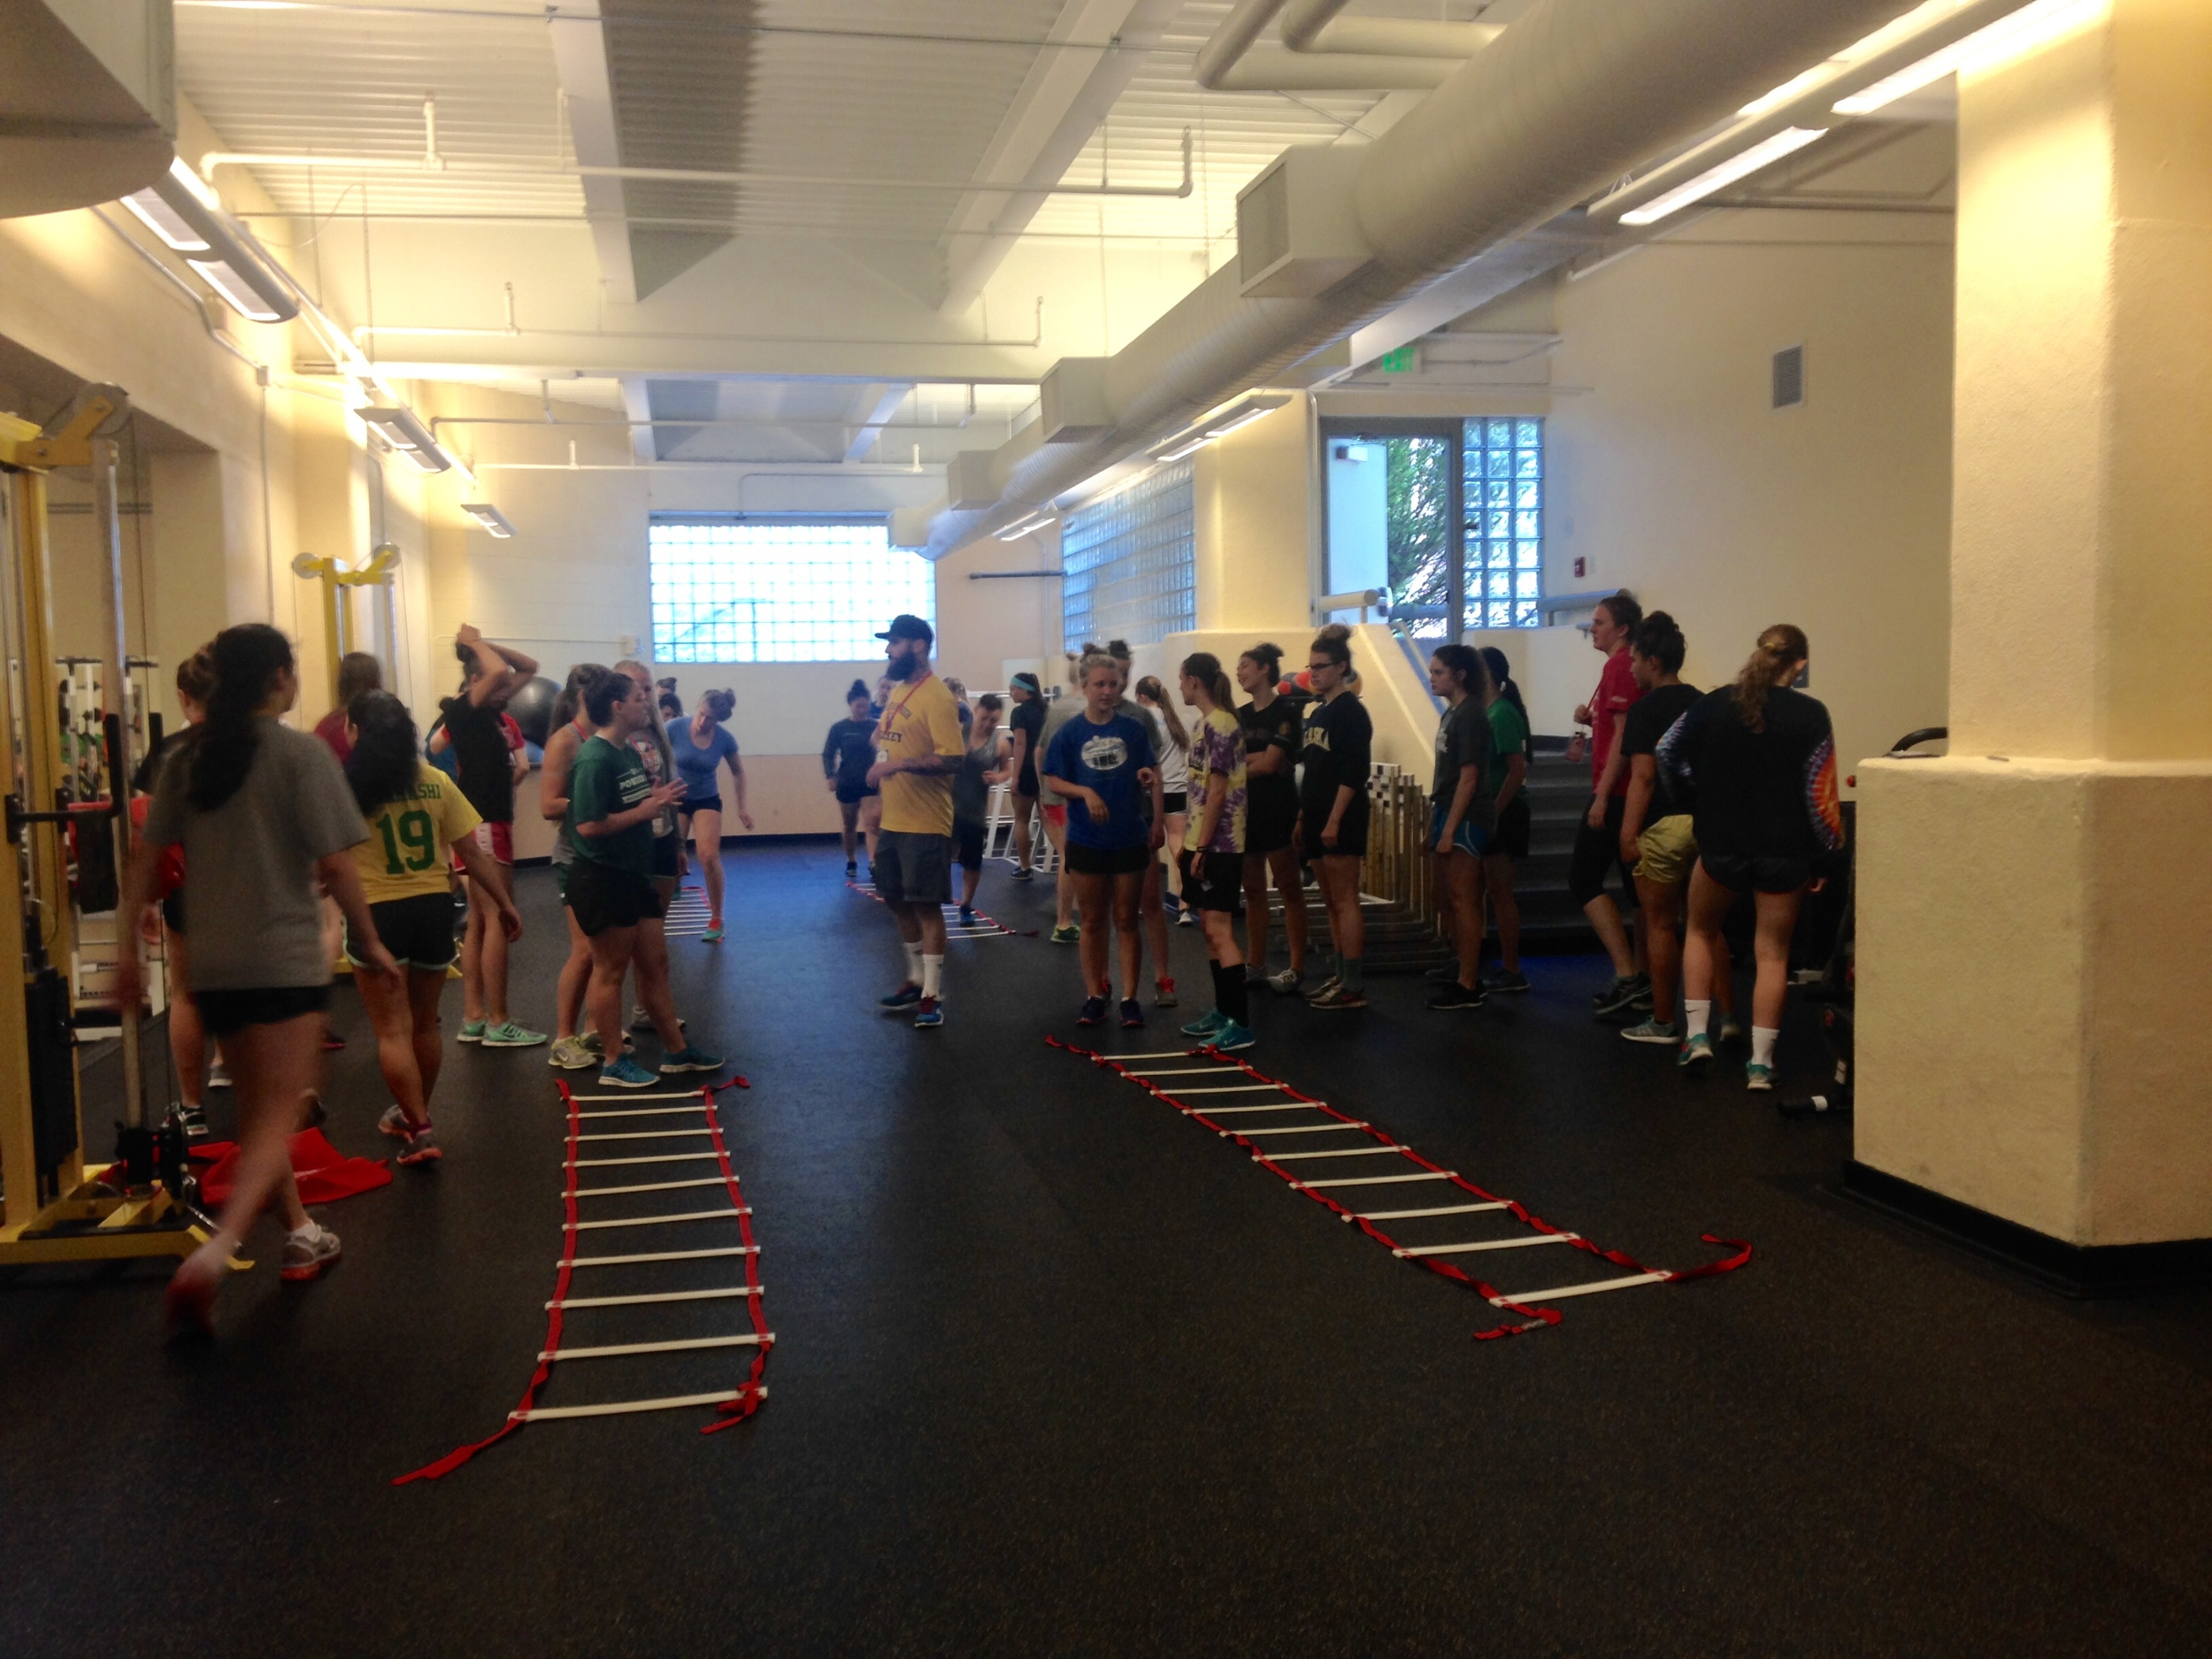 Cody Lampl, putting the girl's through some agility ladder training.